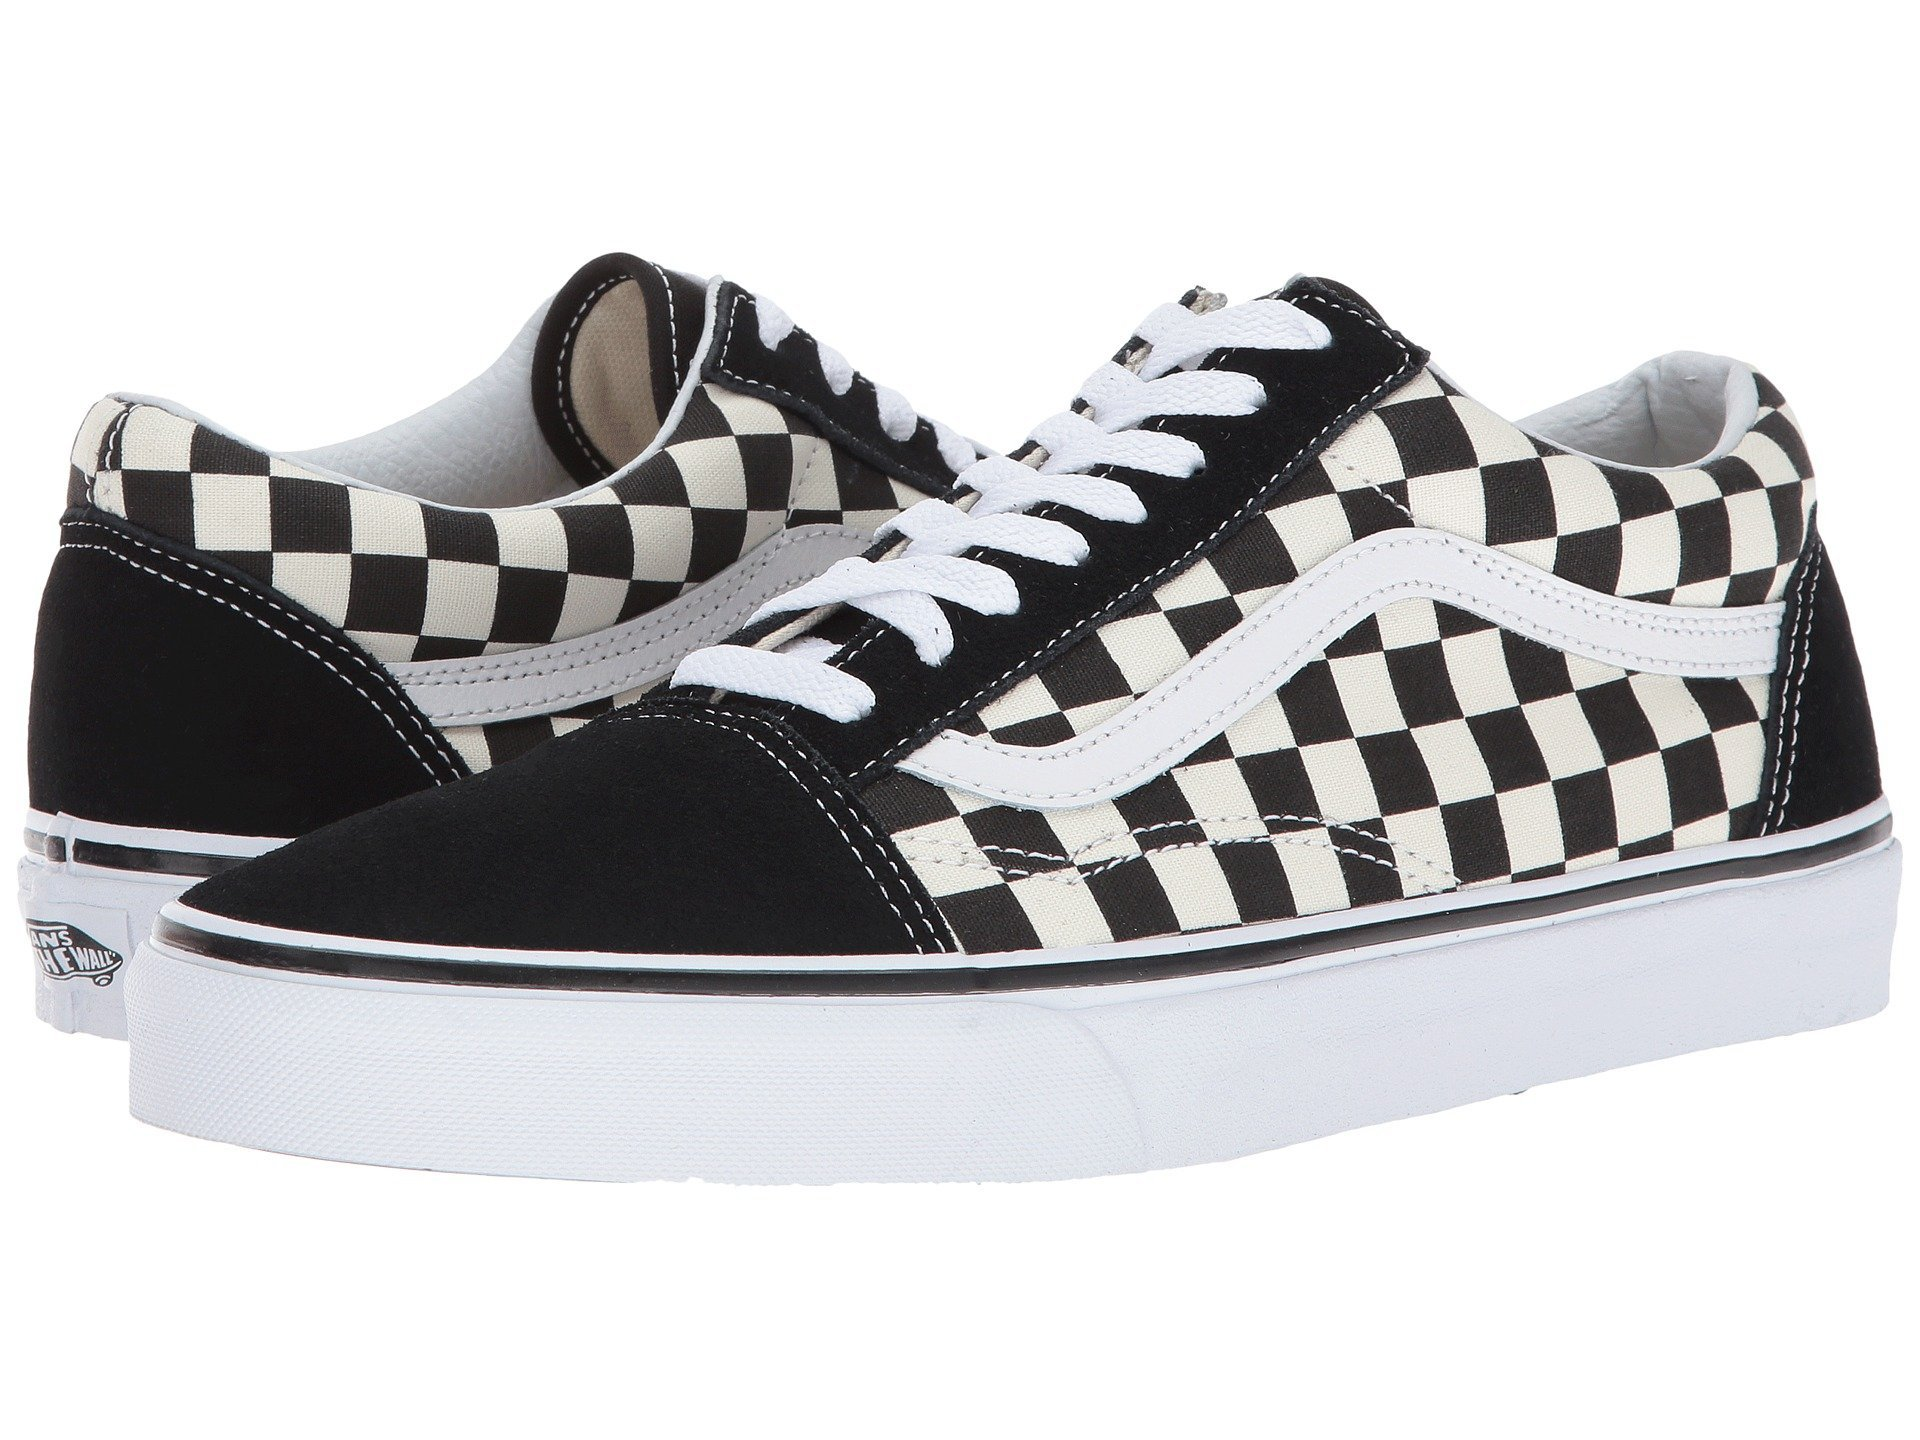 a35ec3bd930d3a Galleon - Vans Old Skool (Primary Checkered) Black White Size 9